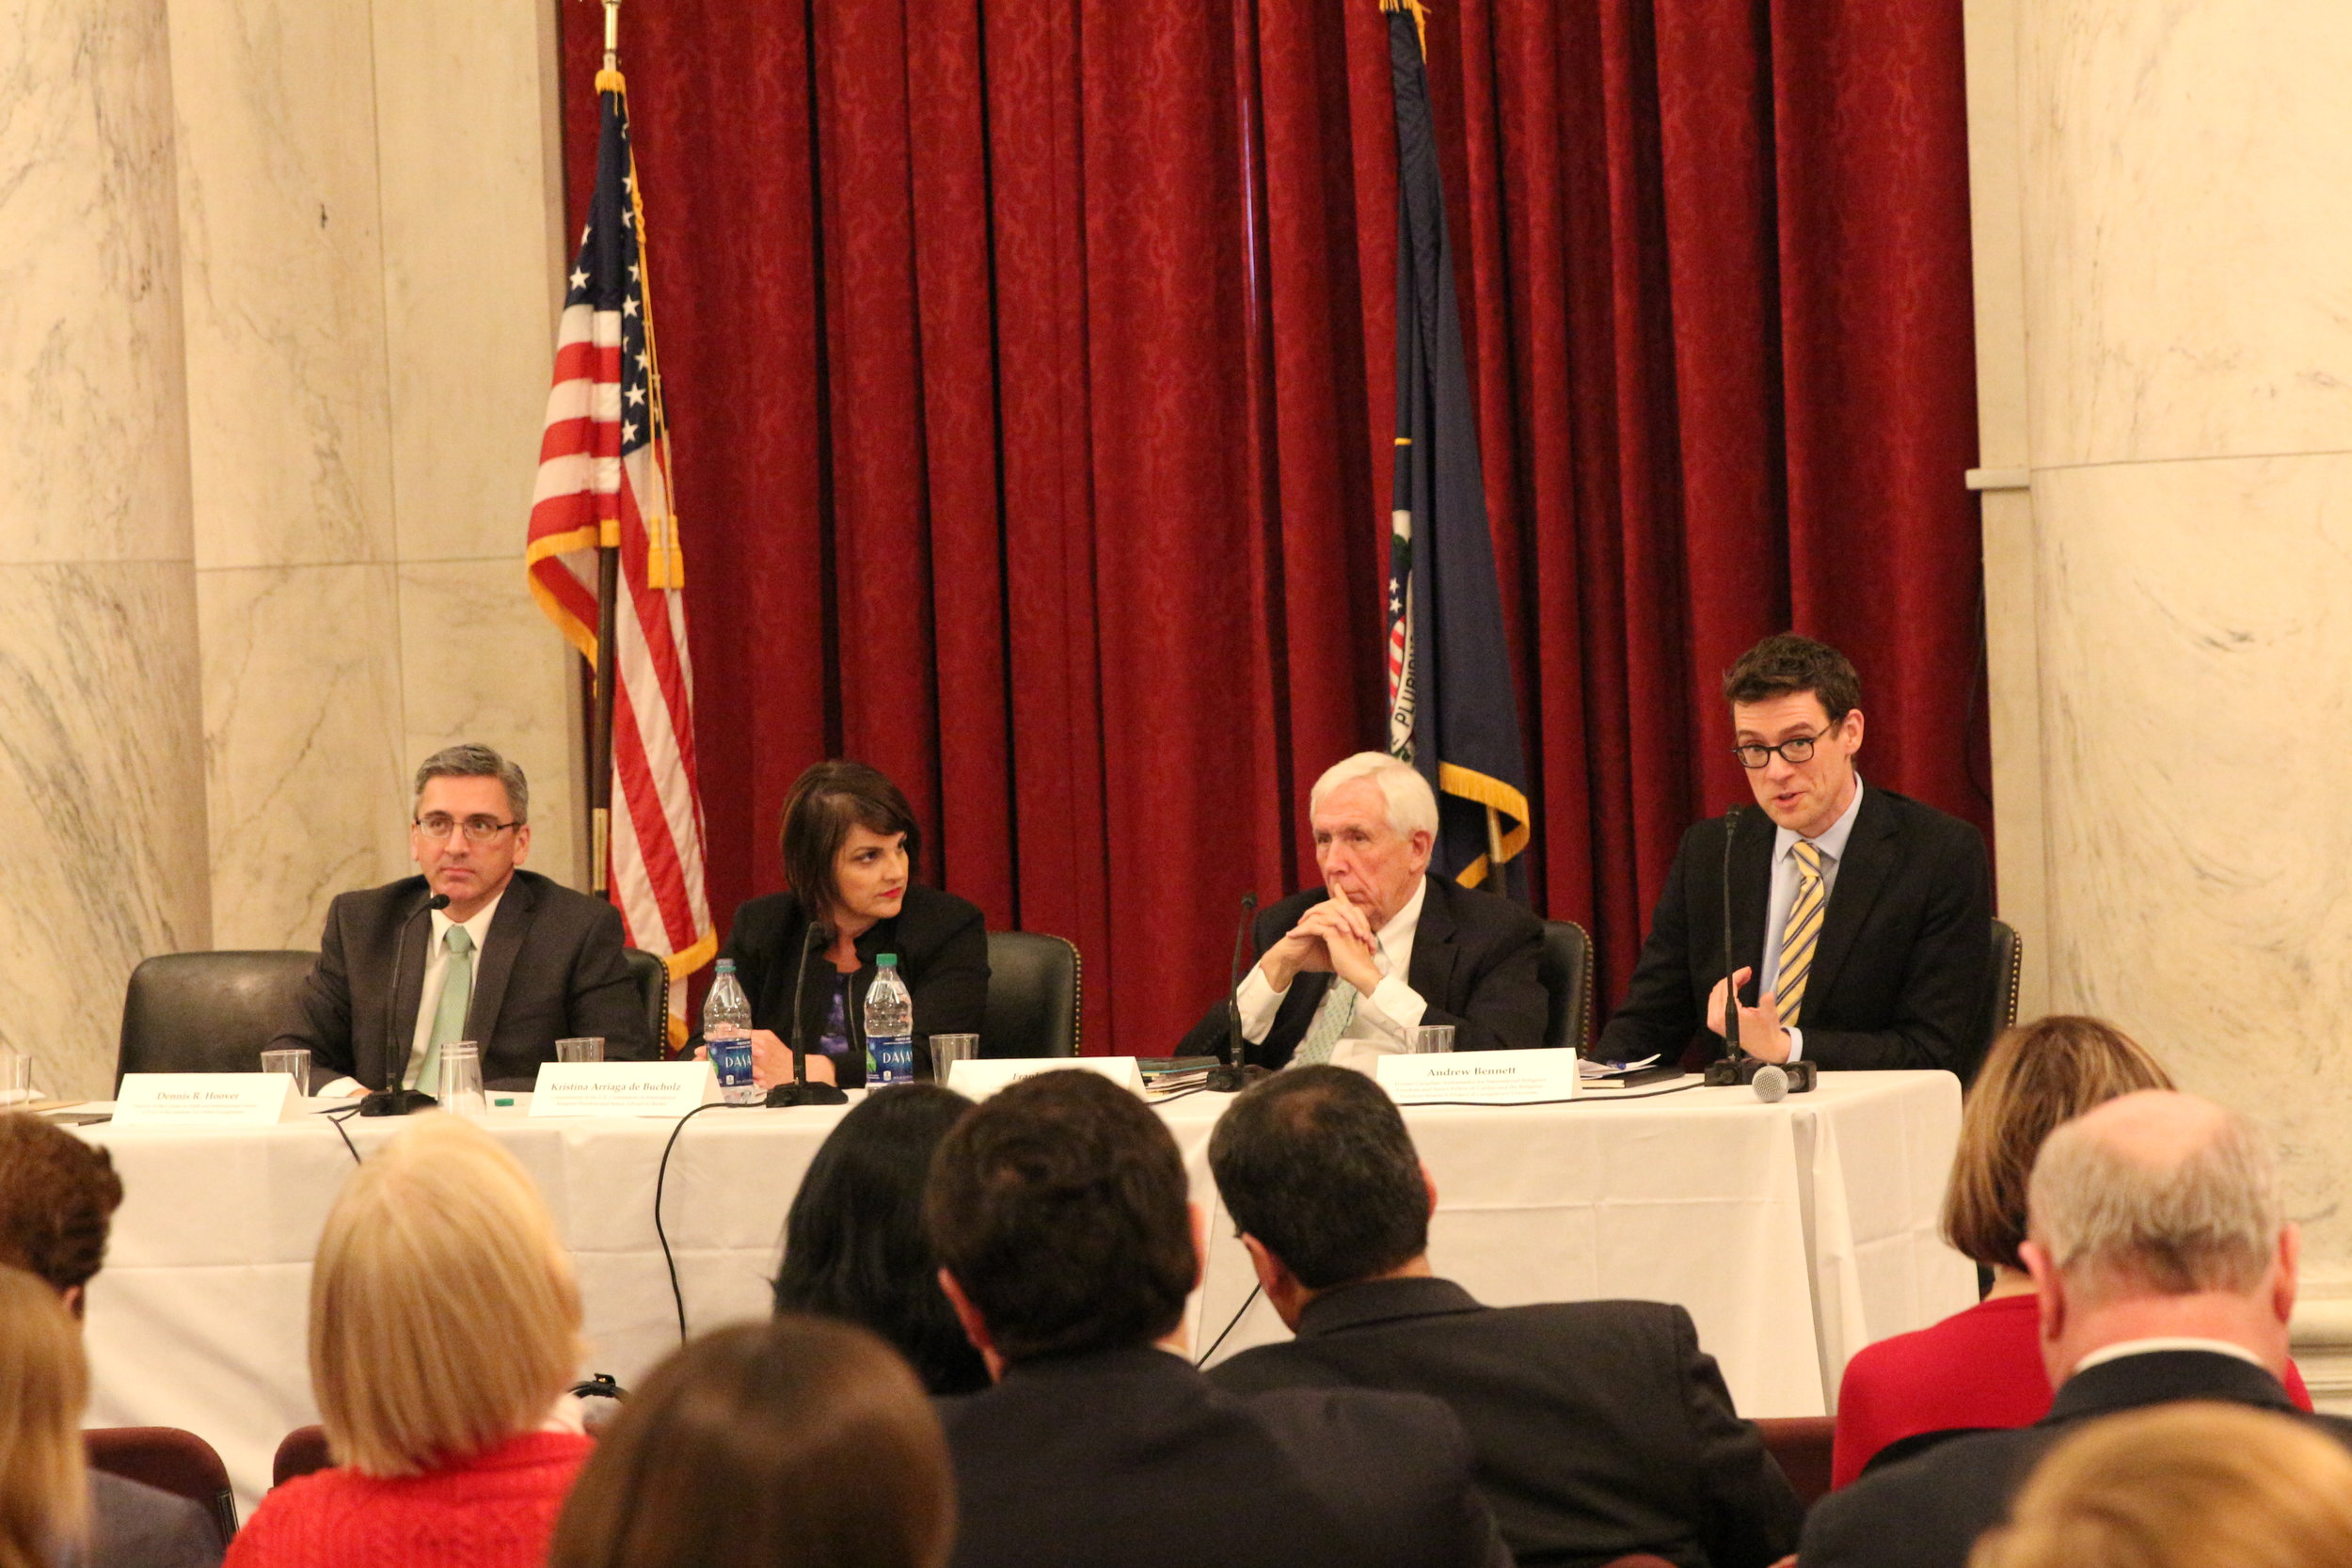 Panelists discussed the next steps to be taken for strengthening religious freedom in the new administration.